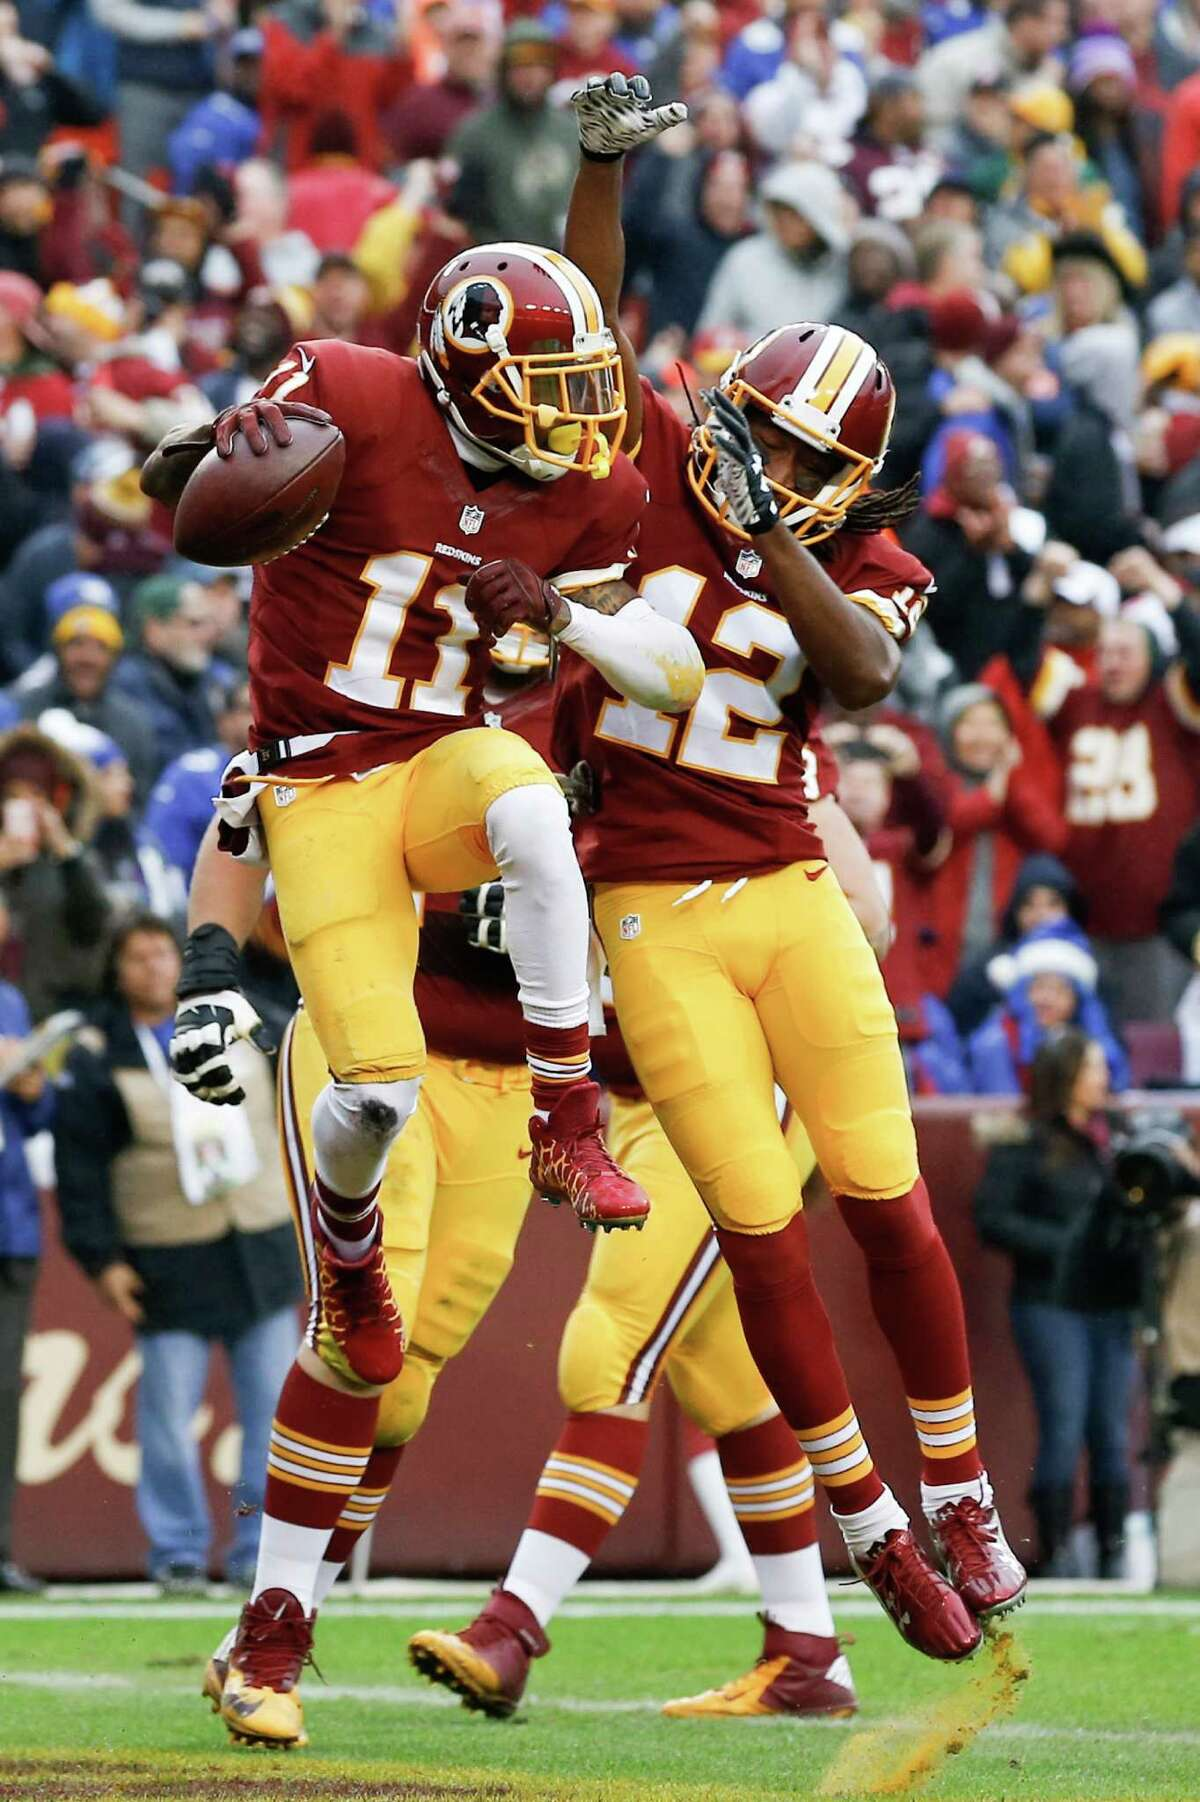 Washington Redskins wide receiver DeSean Jackson (11) celebrates his touchdown with wide receiver Andre Roberts (12) during the first half of an NFL football game against the New York Giants in Landover, Md., Sunday, Nov. 29, 2015. (AP Photo/Patrick Semansky) ORG XMIT: FDX105